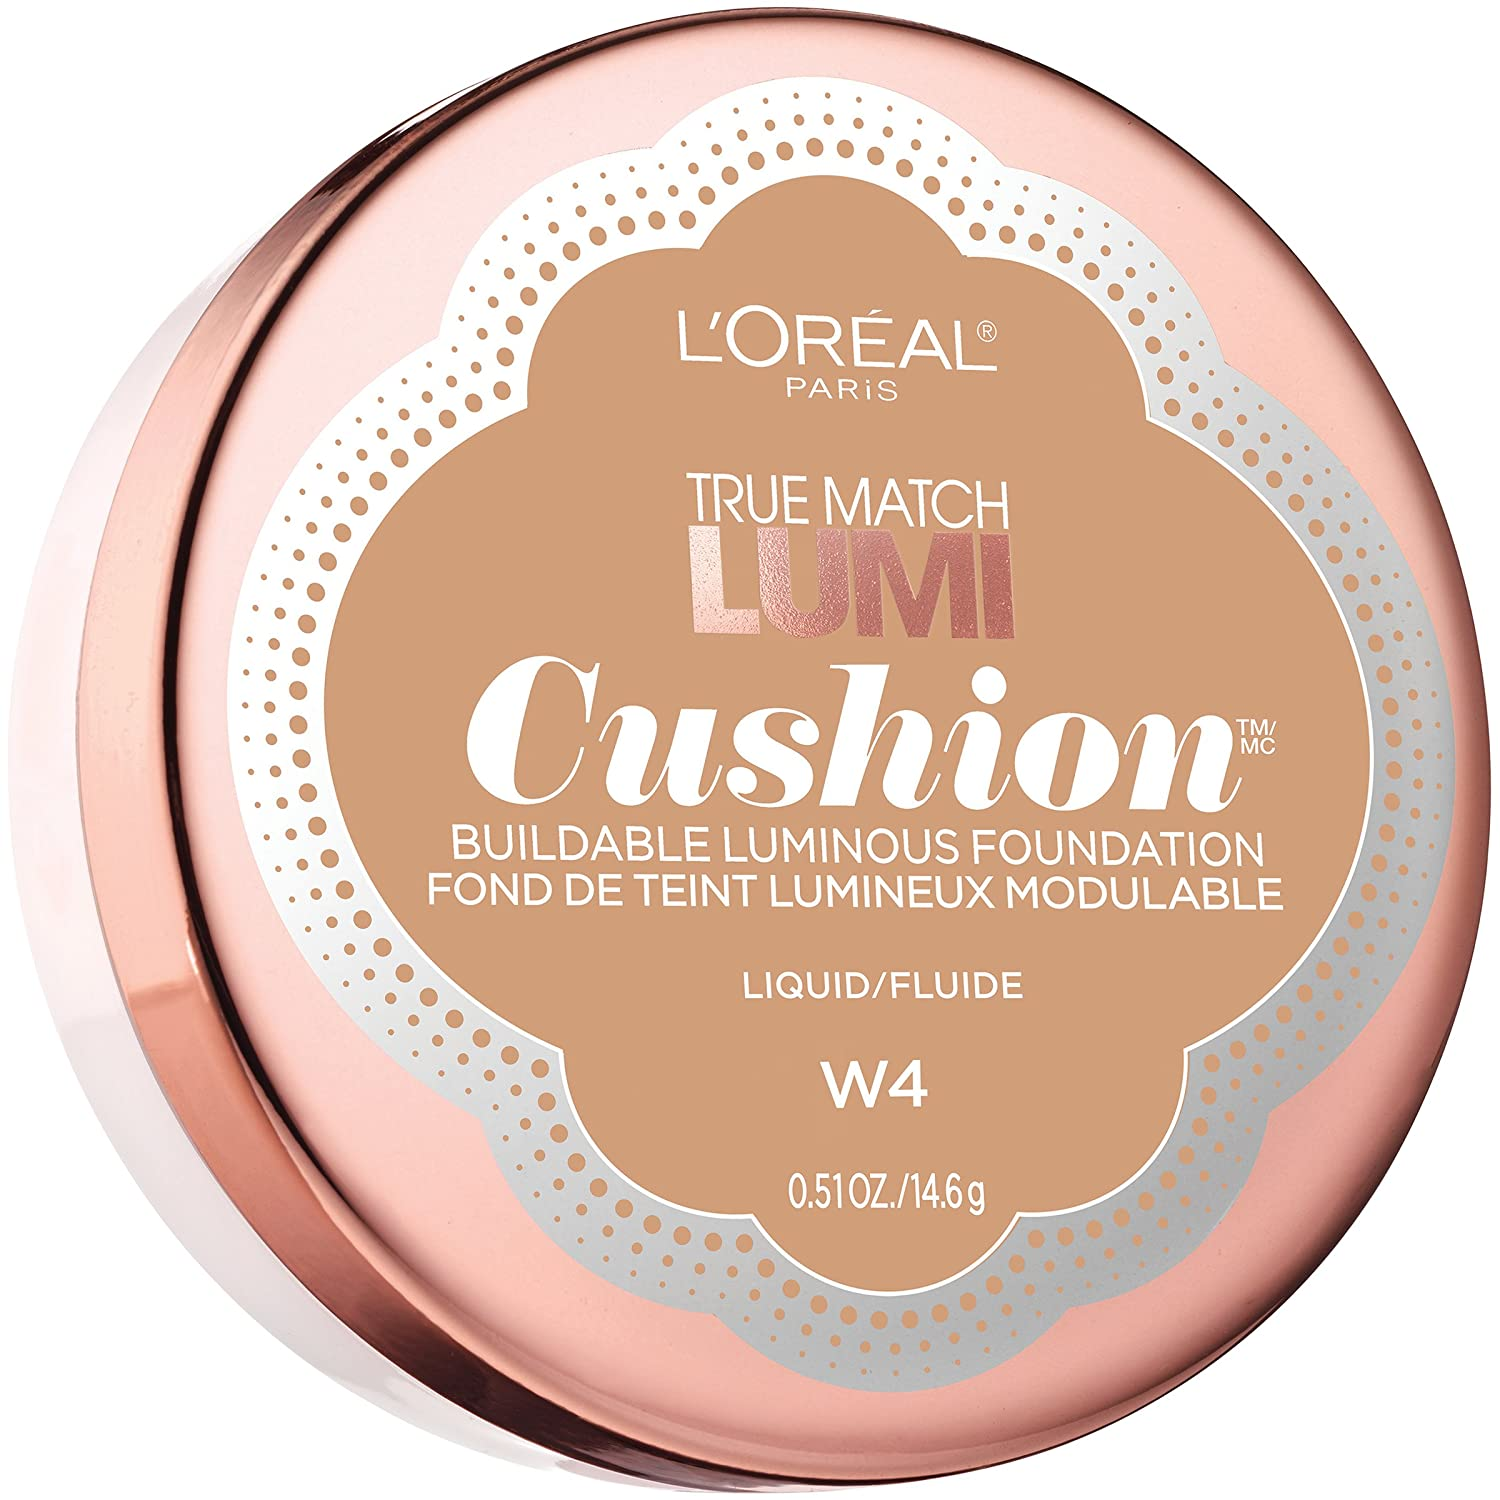 L'Oréal Paris True Match Lumi Cushion Foundation, W4 Natural Beige, 0.51 oz.